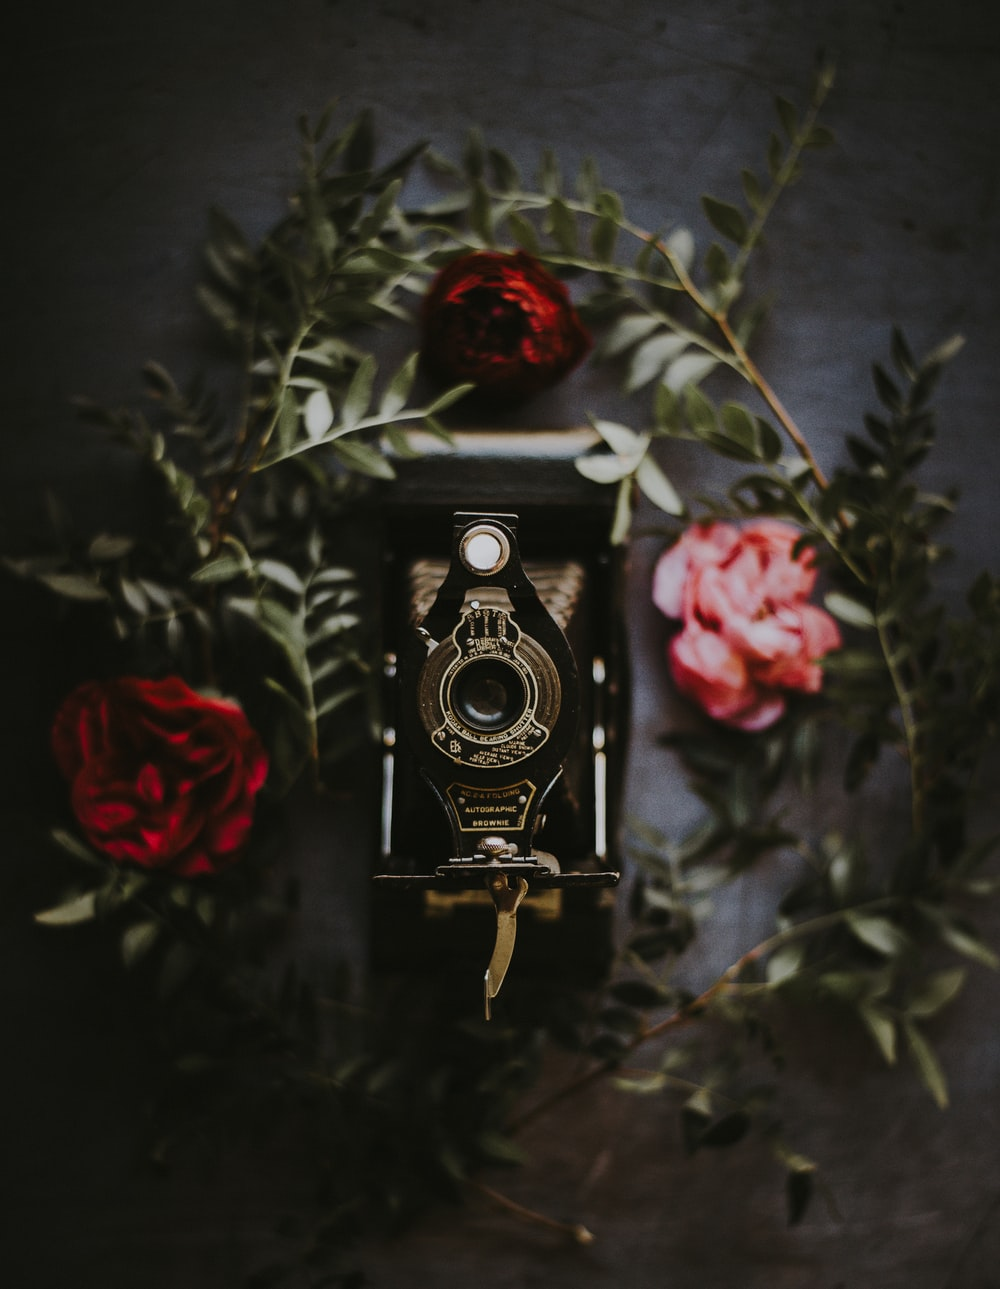 black folding camera surrounded red roses